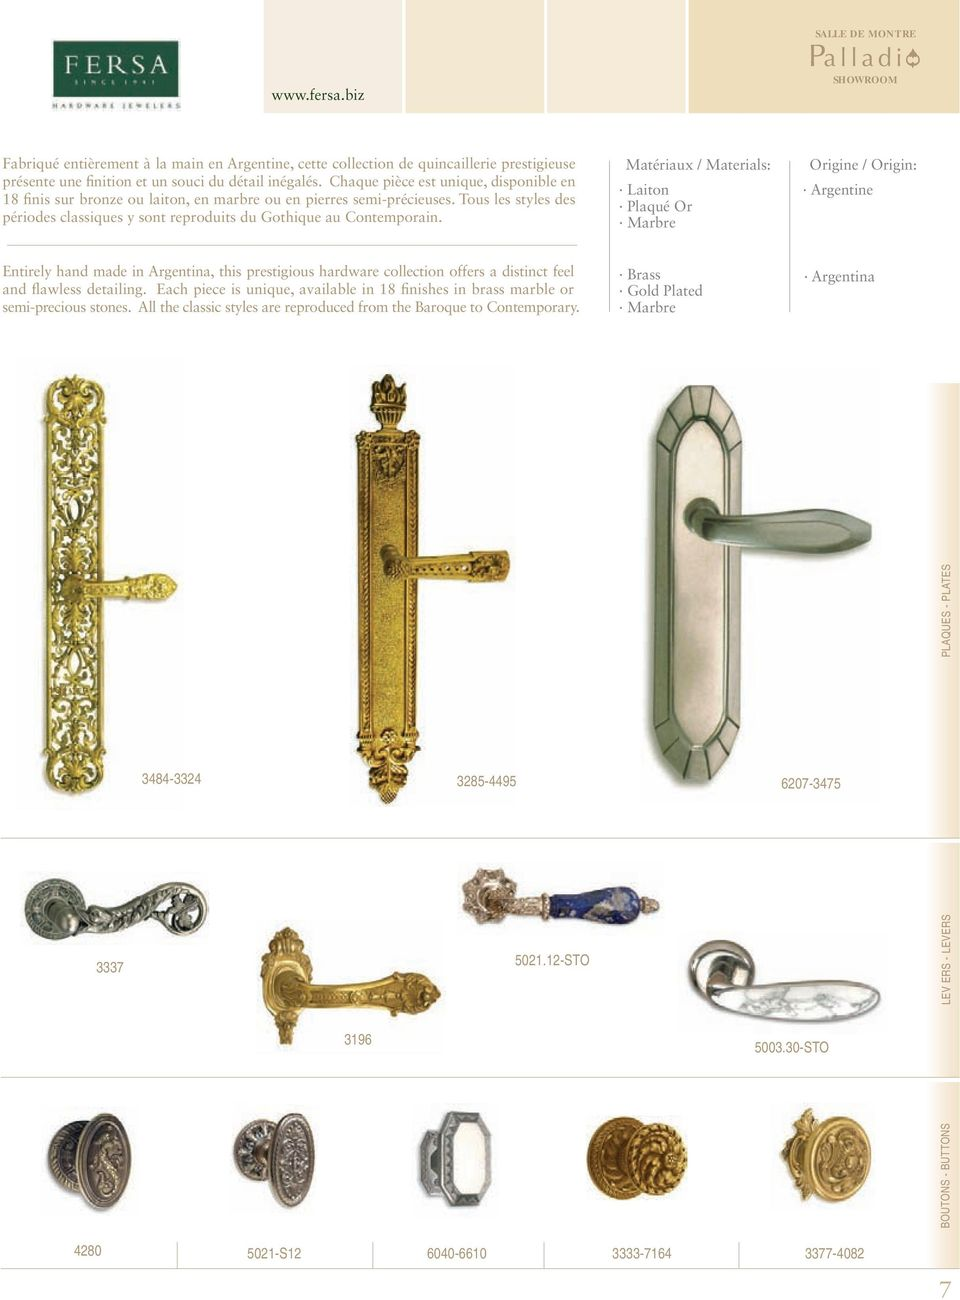 Laiton Plaqué Or Marbre Argentine Entirely hand made in Argentina, this prestigious hardware collection offers a distinct feel and flawless detailing.